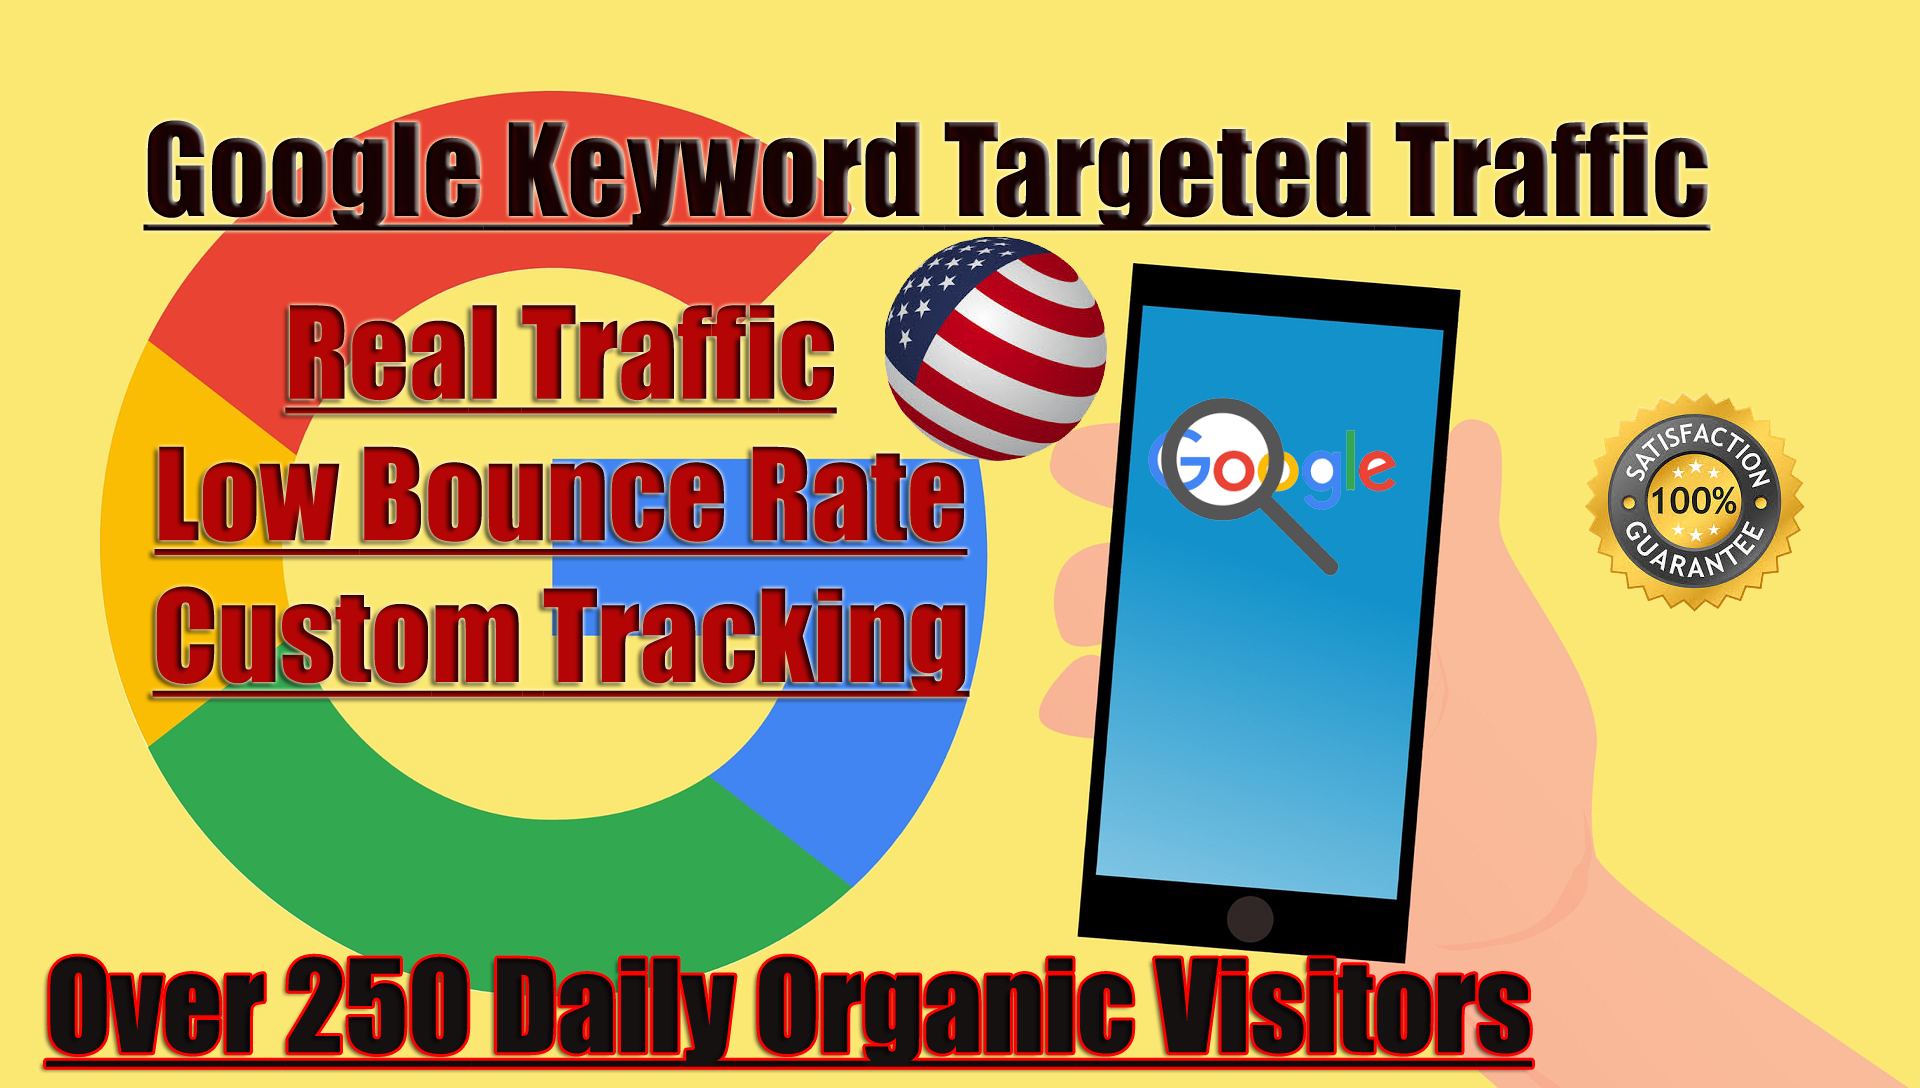 We will send 30 days unlimited USA website traffic from Google,  Bing and yahoo